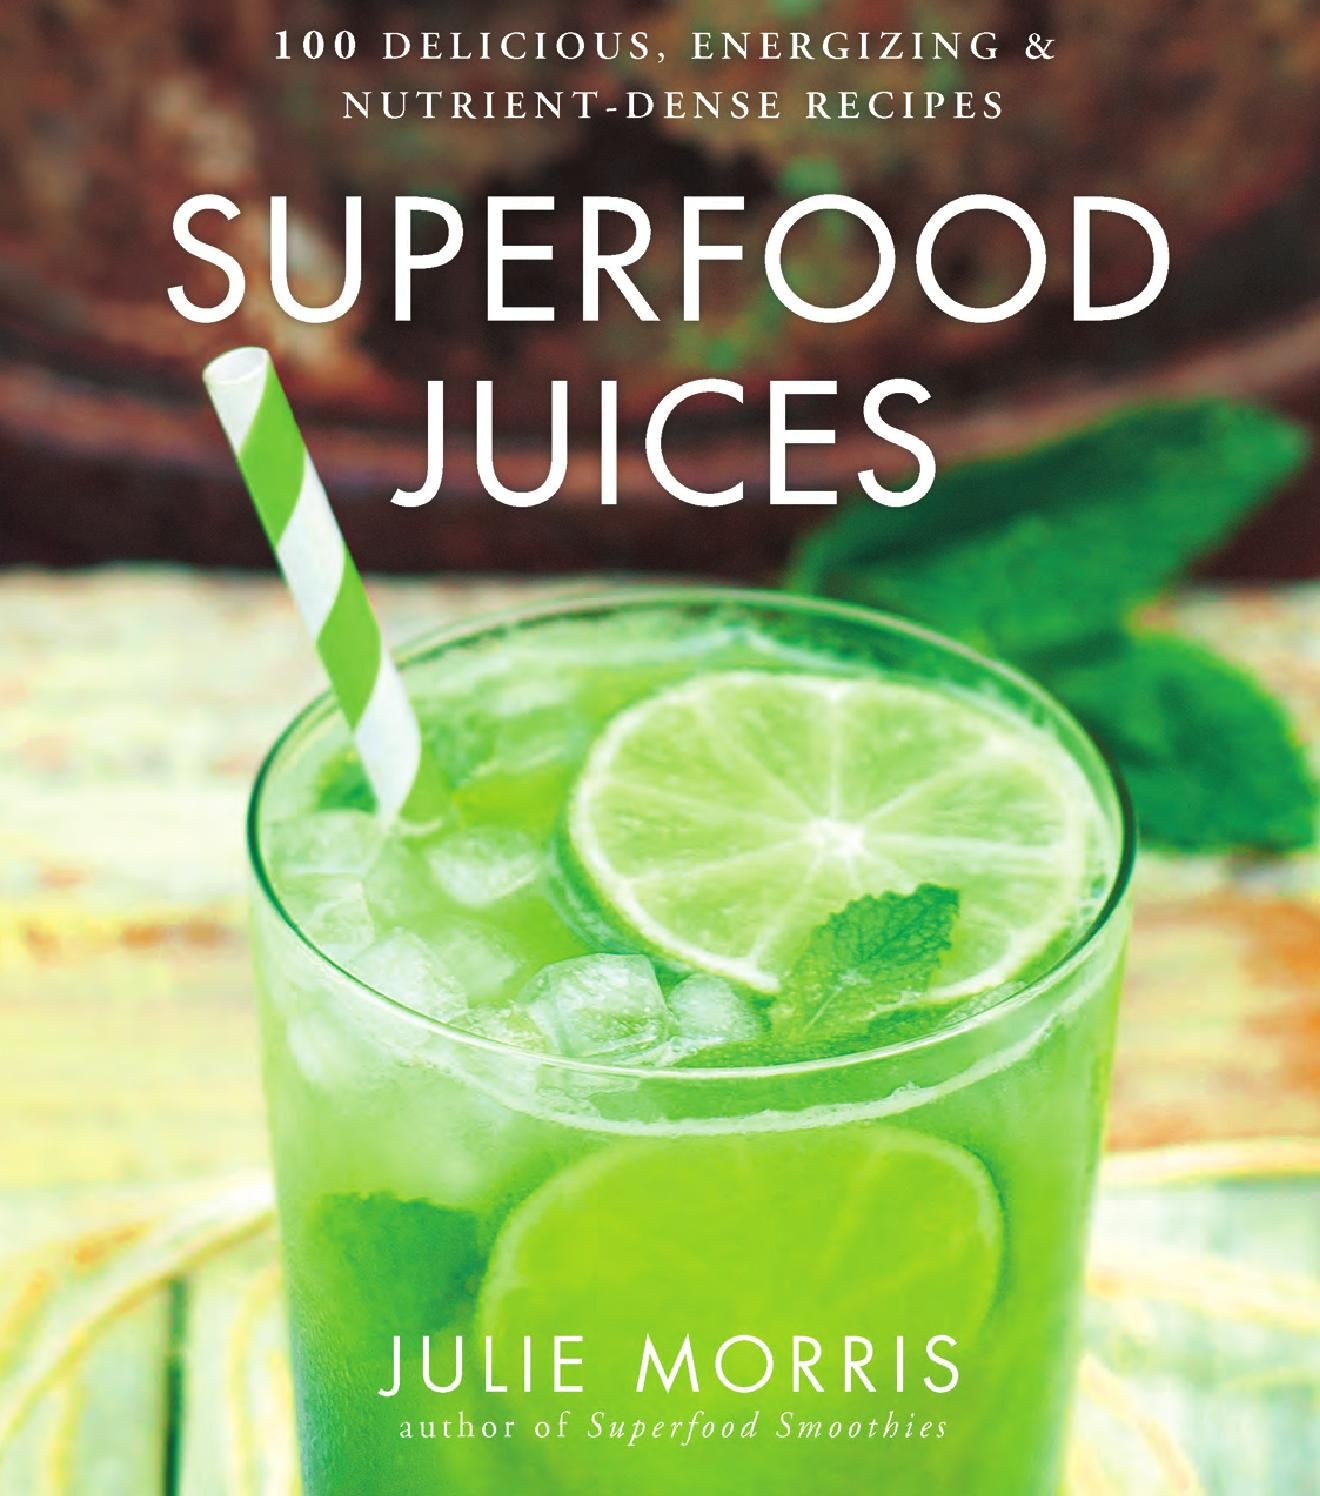 In Superfood Juices, Julie Morris shares 100 of her quick, easy, and irresistible superfood juice recipes and shows us how easy it is to satisfy our hunger for deep-reaching nutrition while delighting our senses with an explosion of delectable flavors and textures. Click for a sneak peek at Morris' delicious recipes.